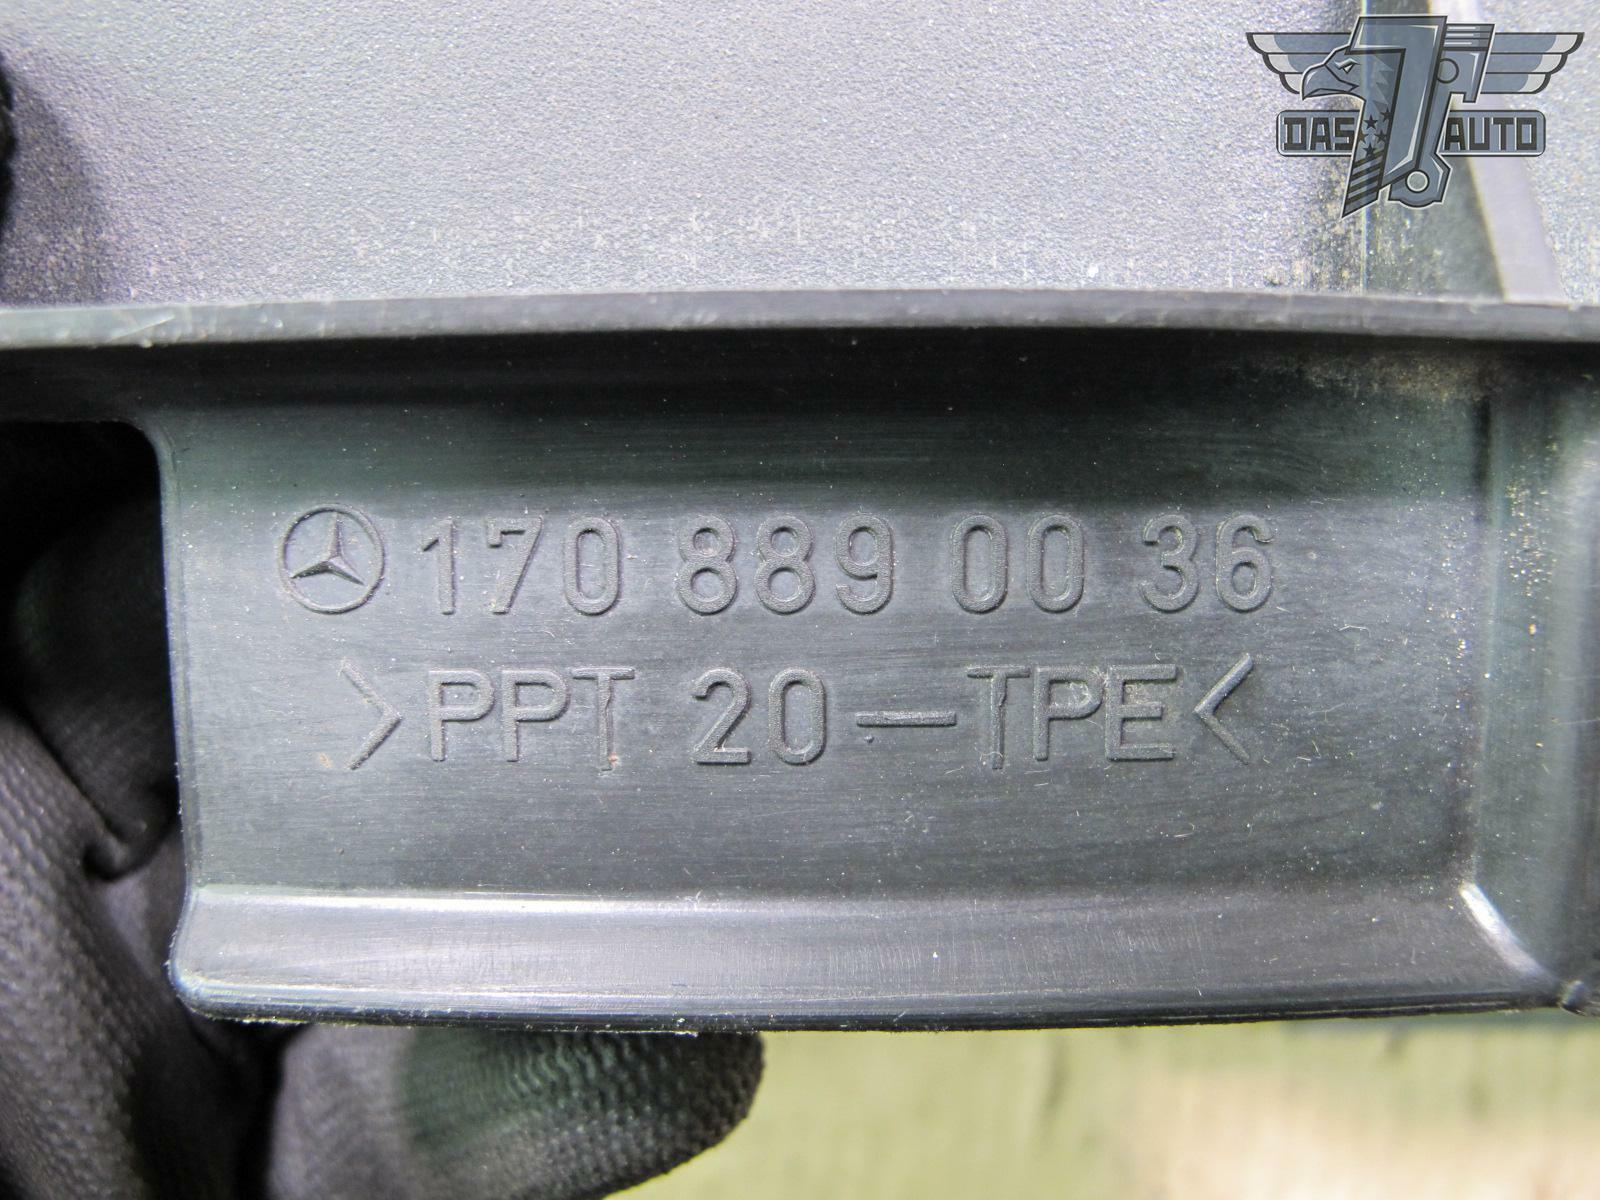 Part Number A1708890036